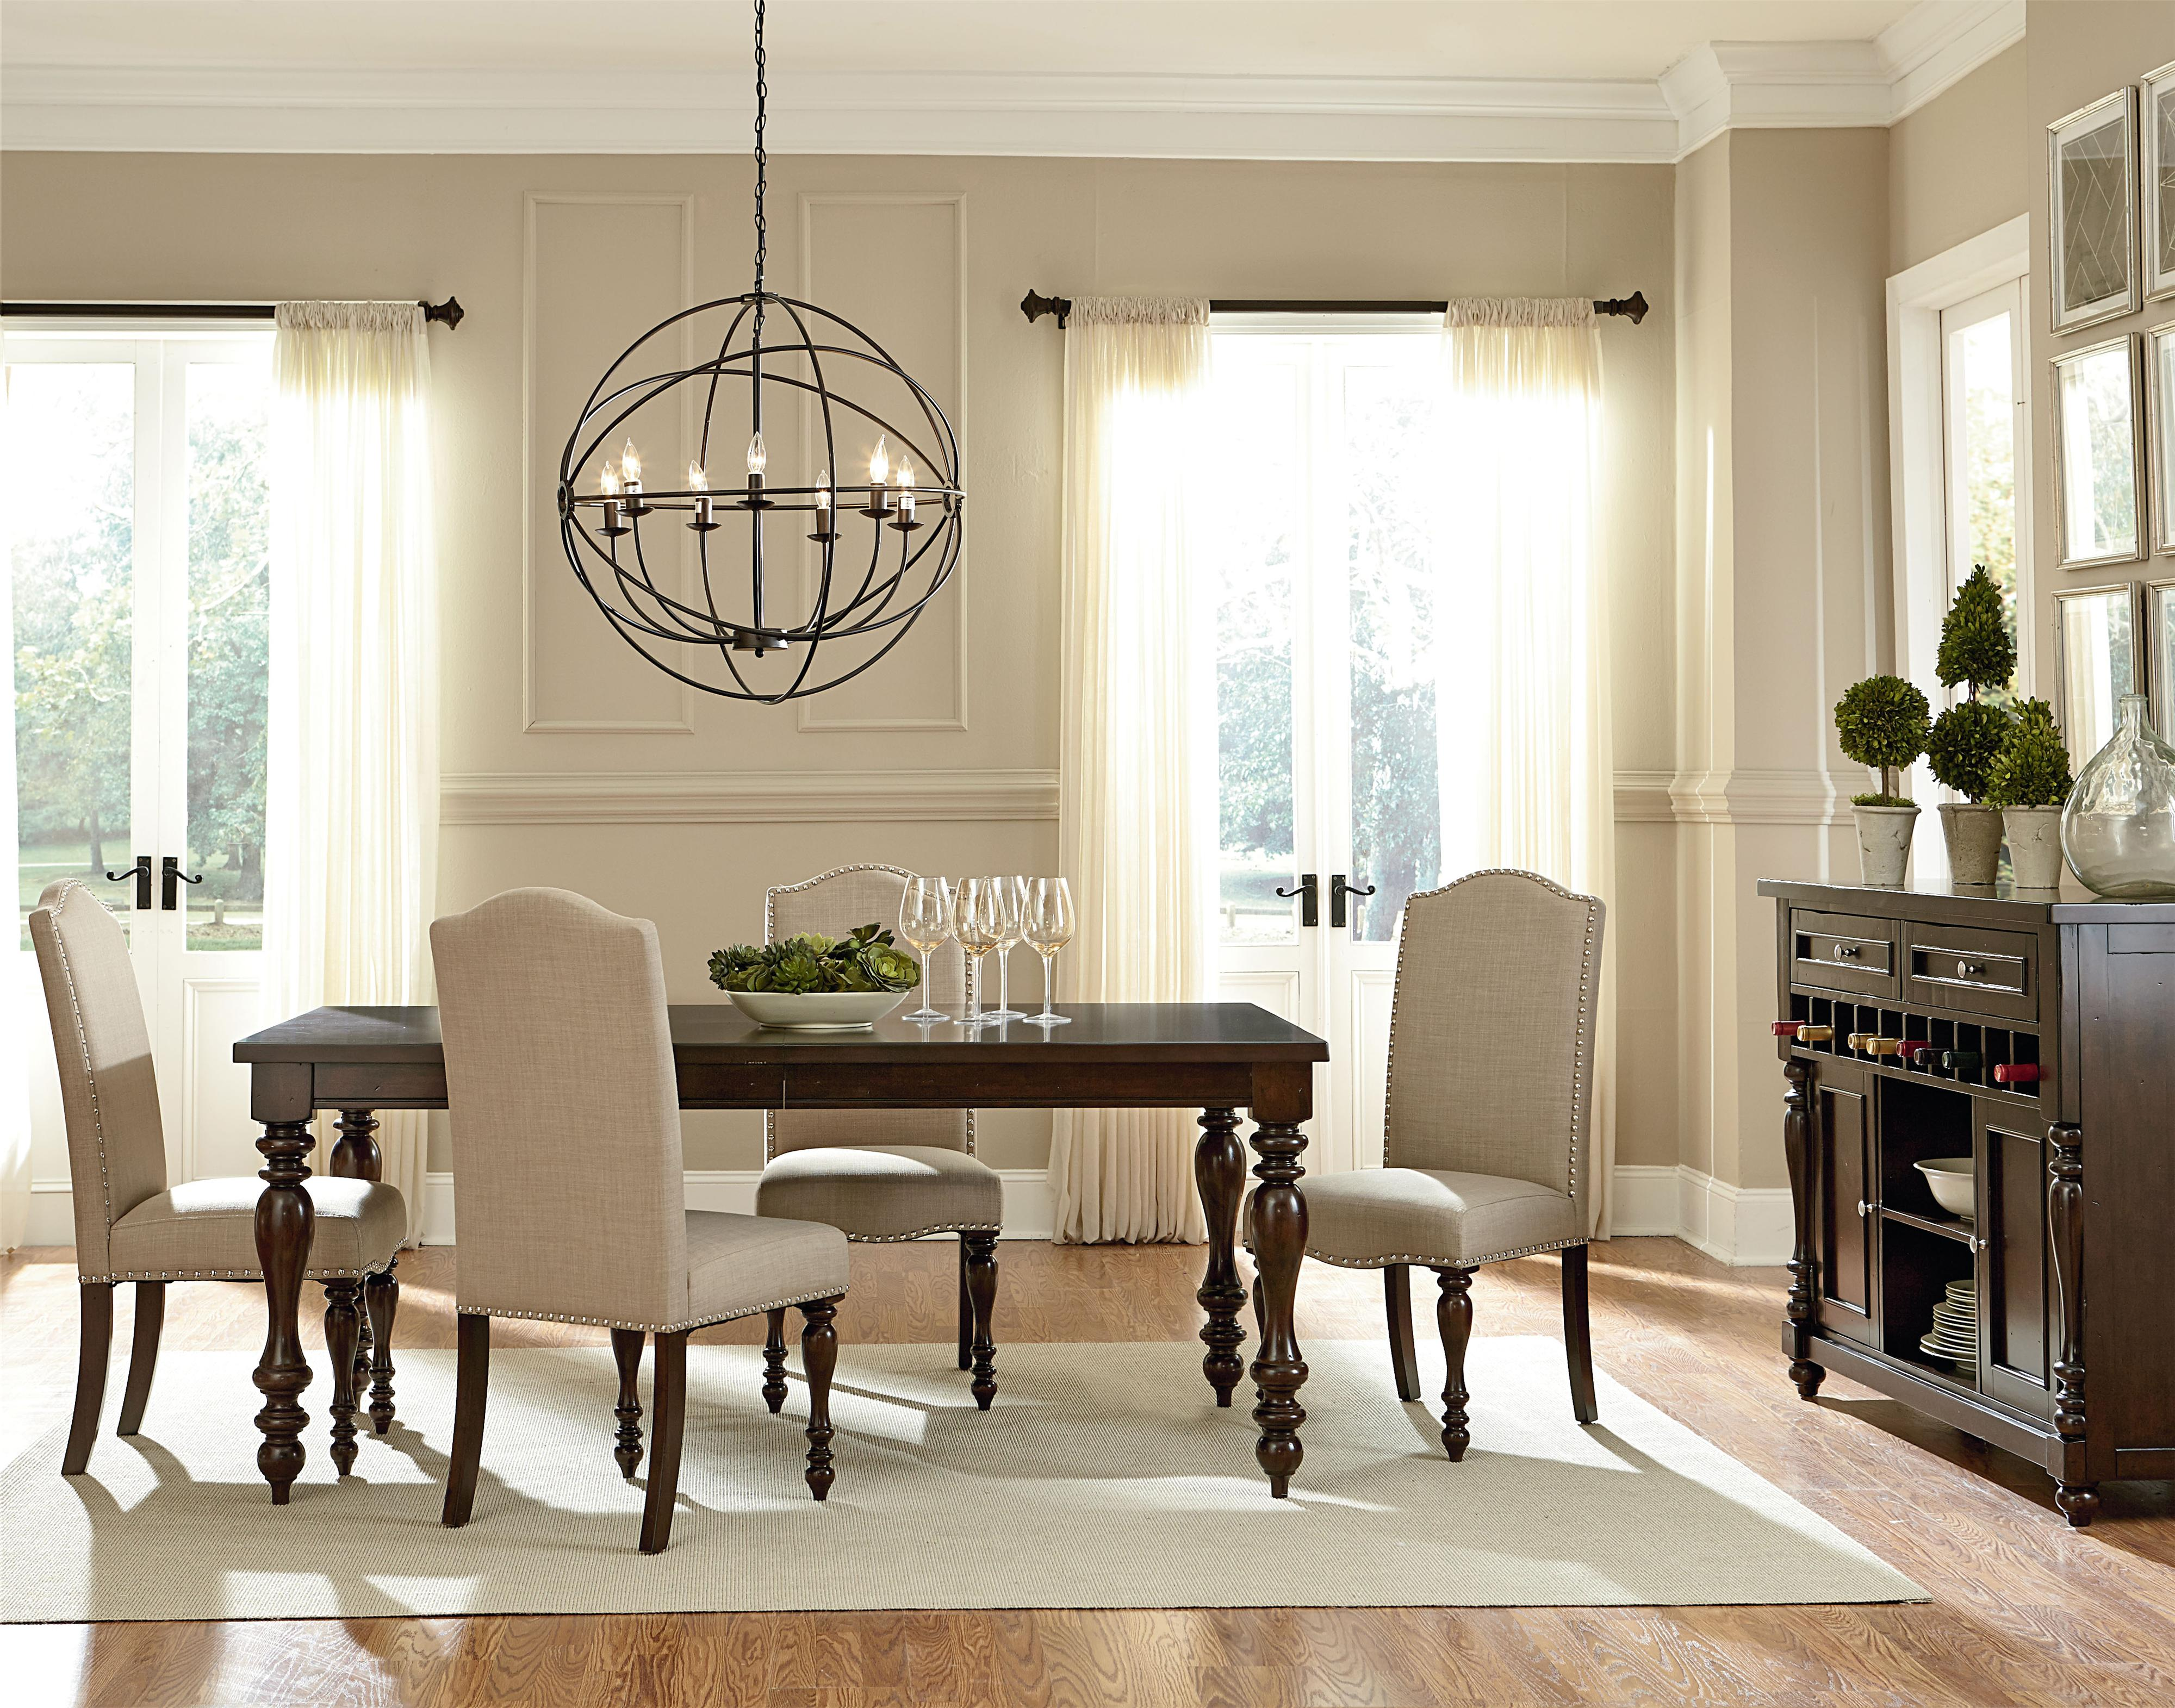 Standard Furniture McGregor Dining Room Group - Item Number: 17720 Dining Room Group